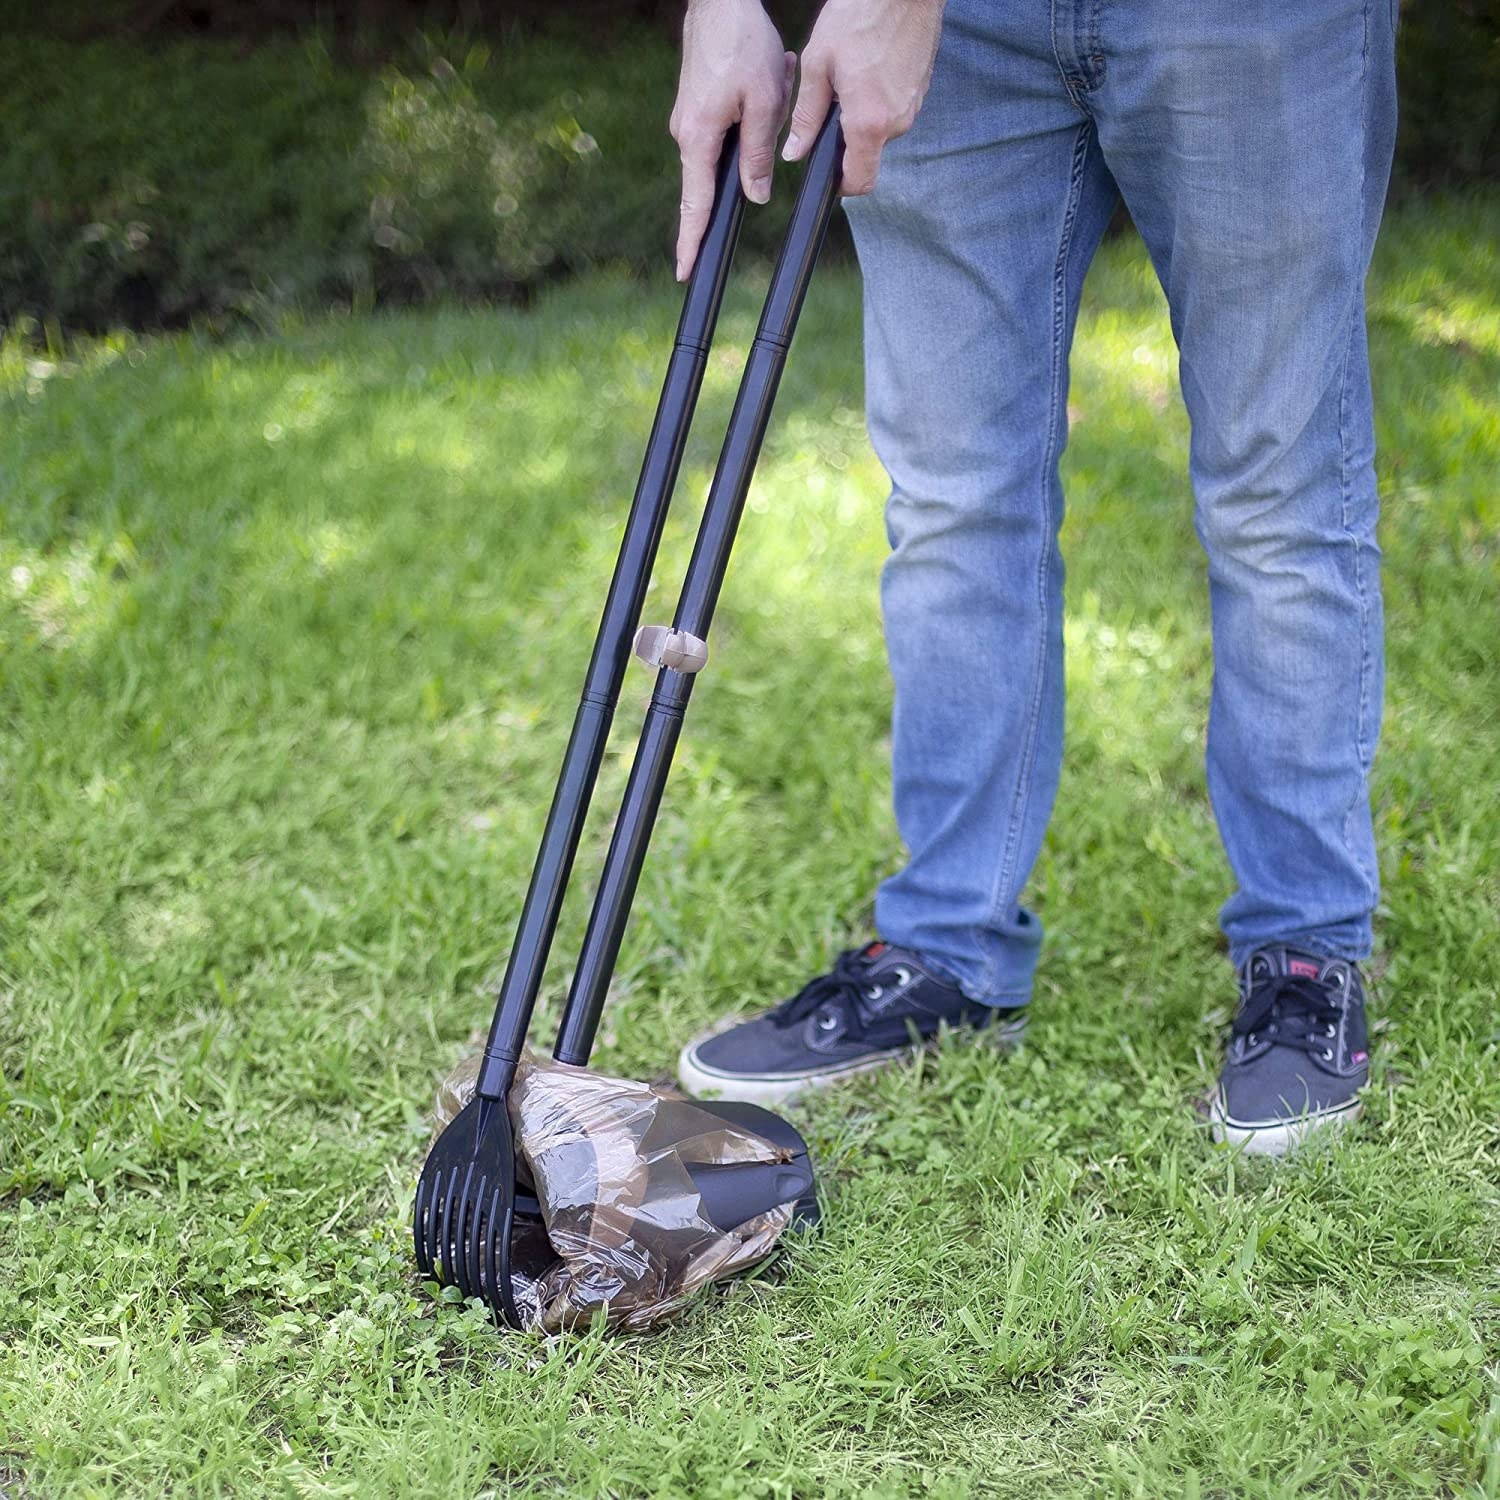 The pooper scooper, which has a rake and a garbage bin